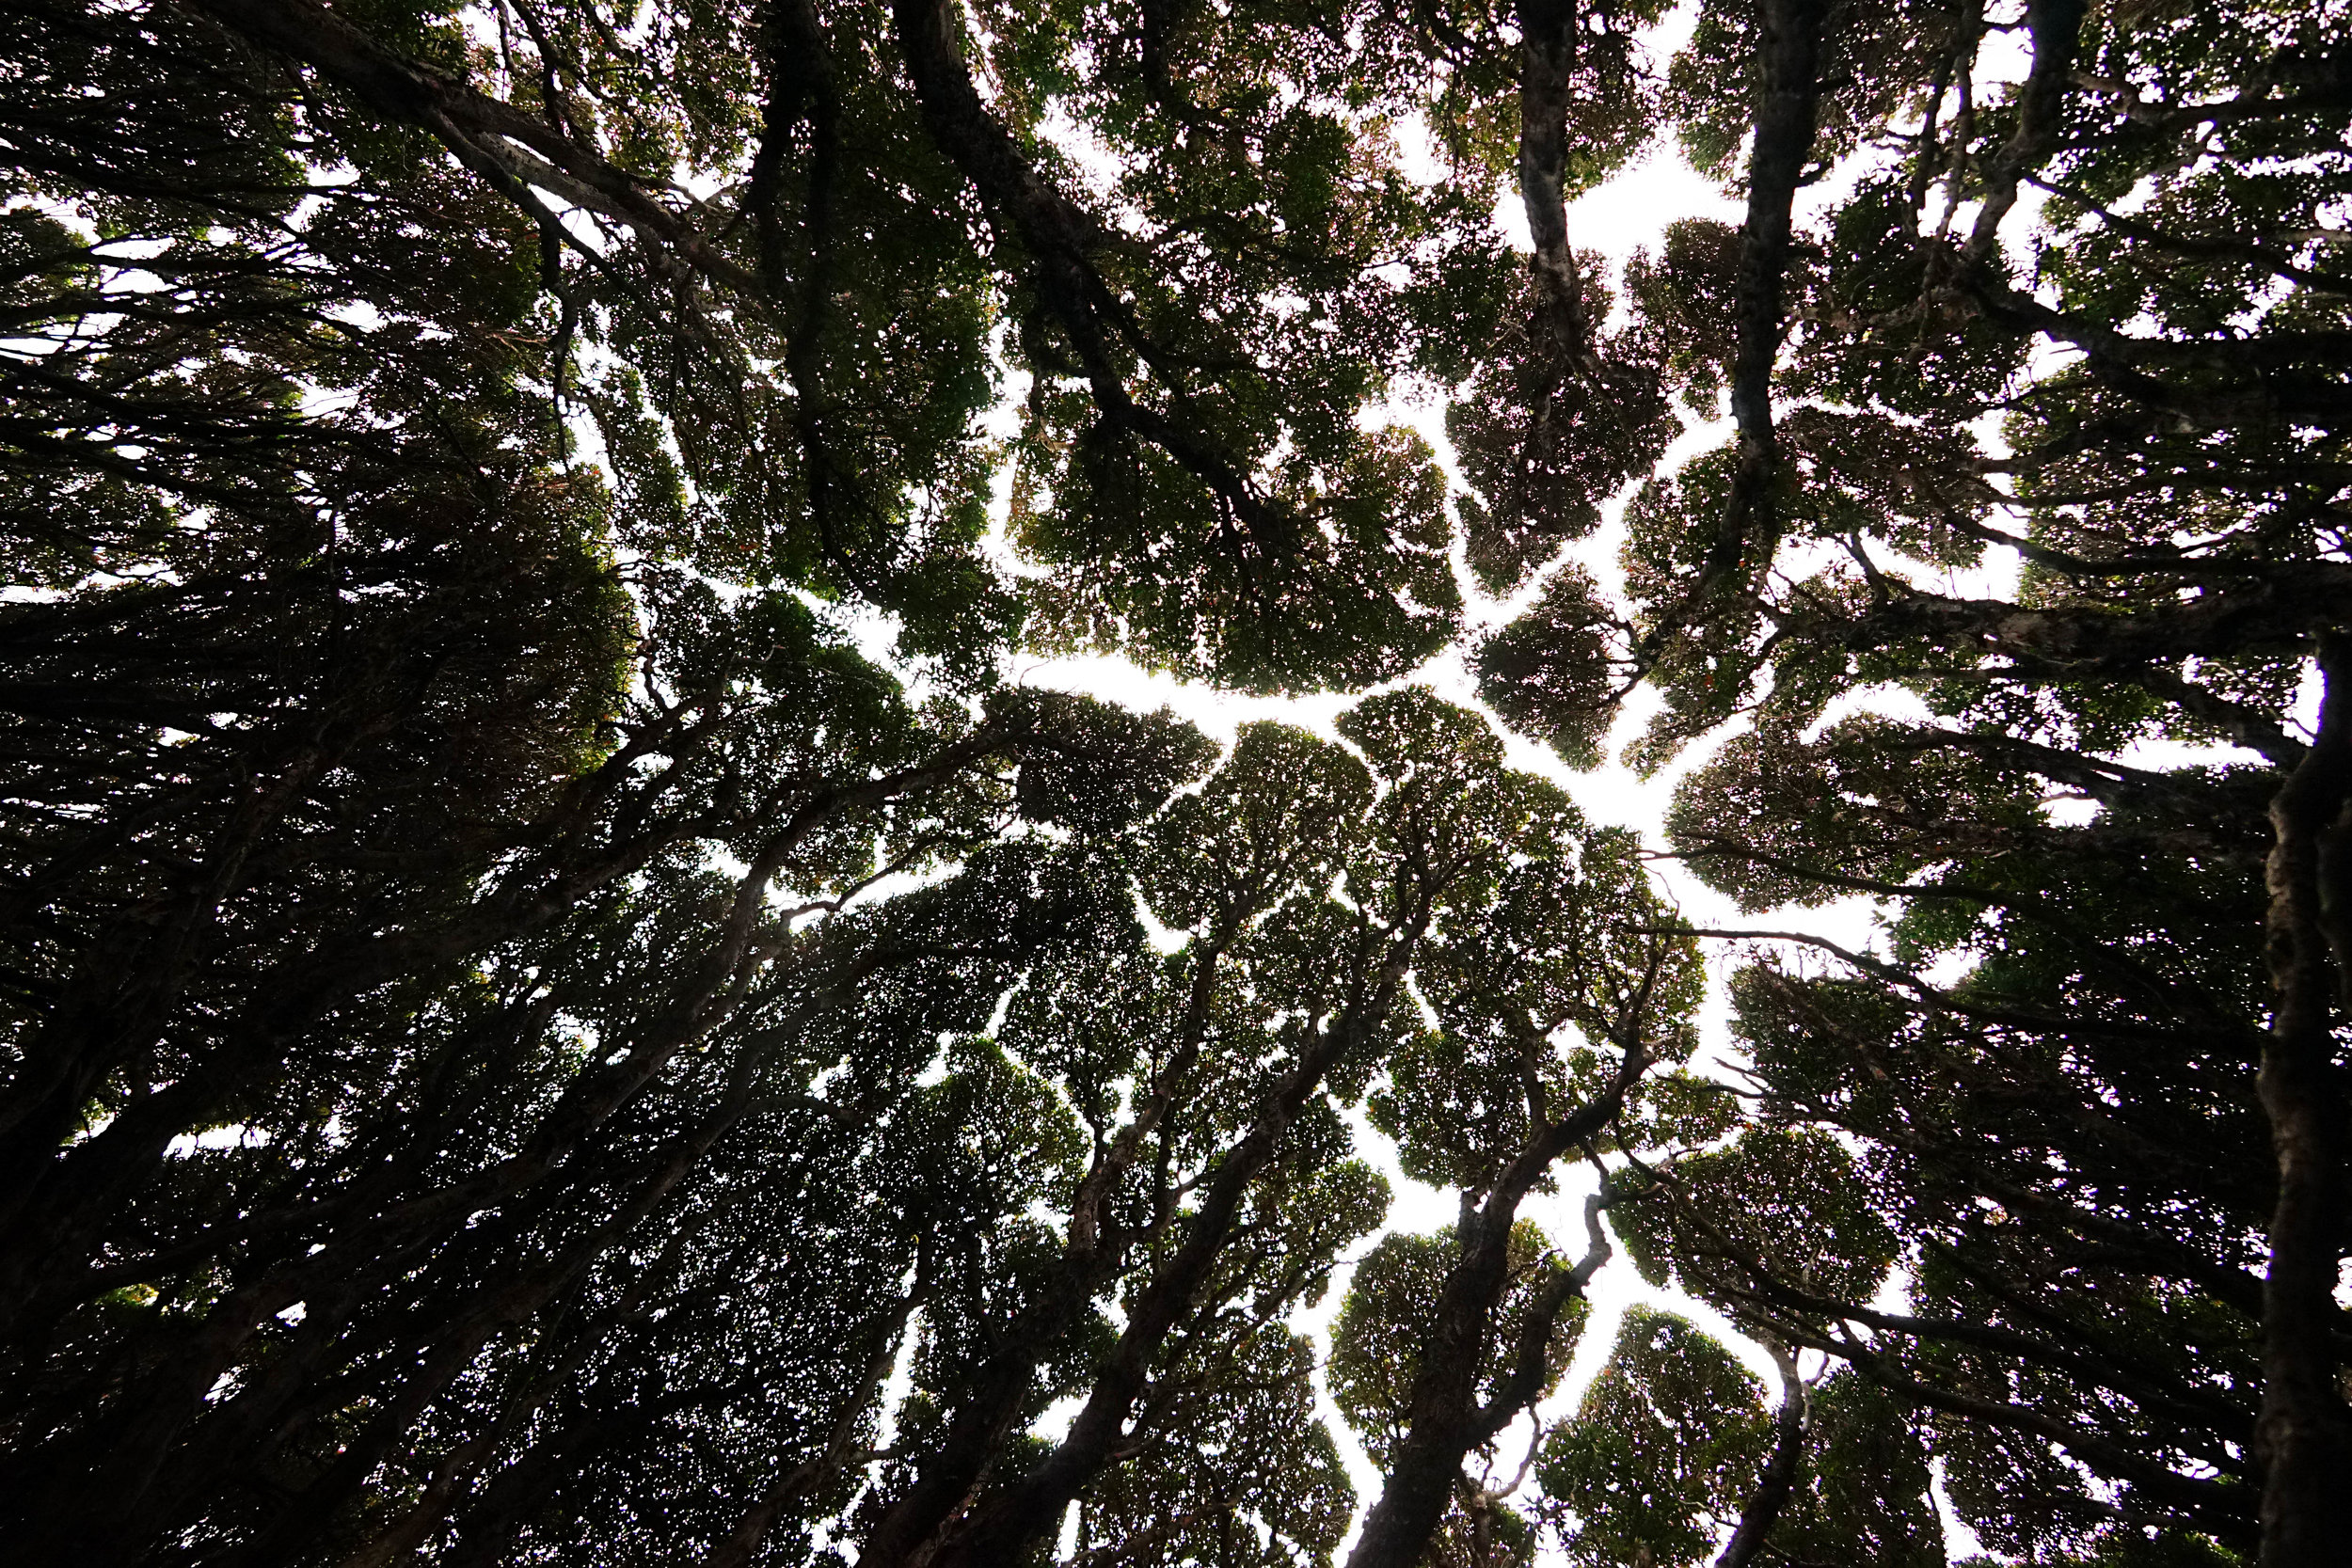 looking up at the Rata forest canopy, where the windswept trees appear to sway together but never touch...